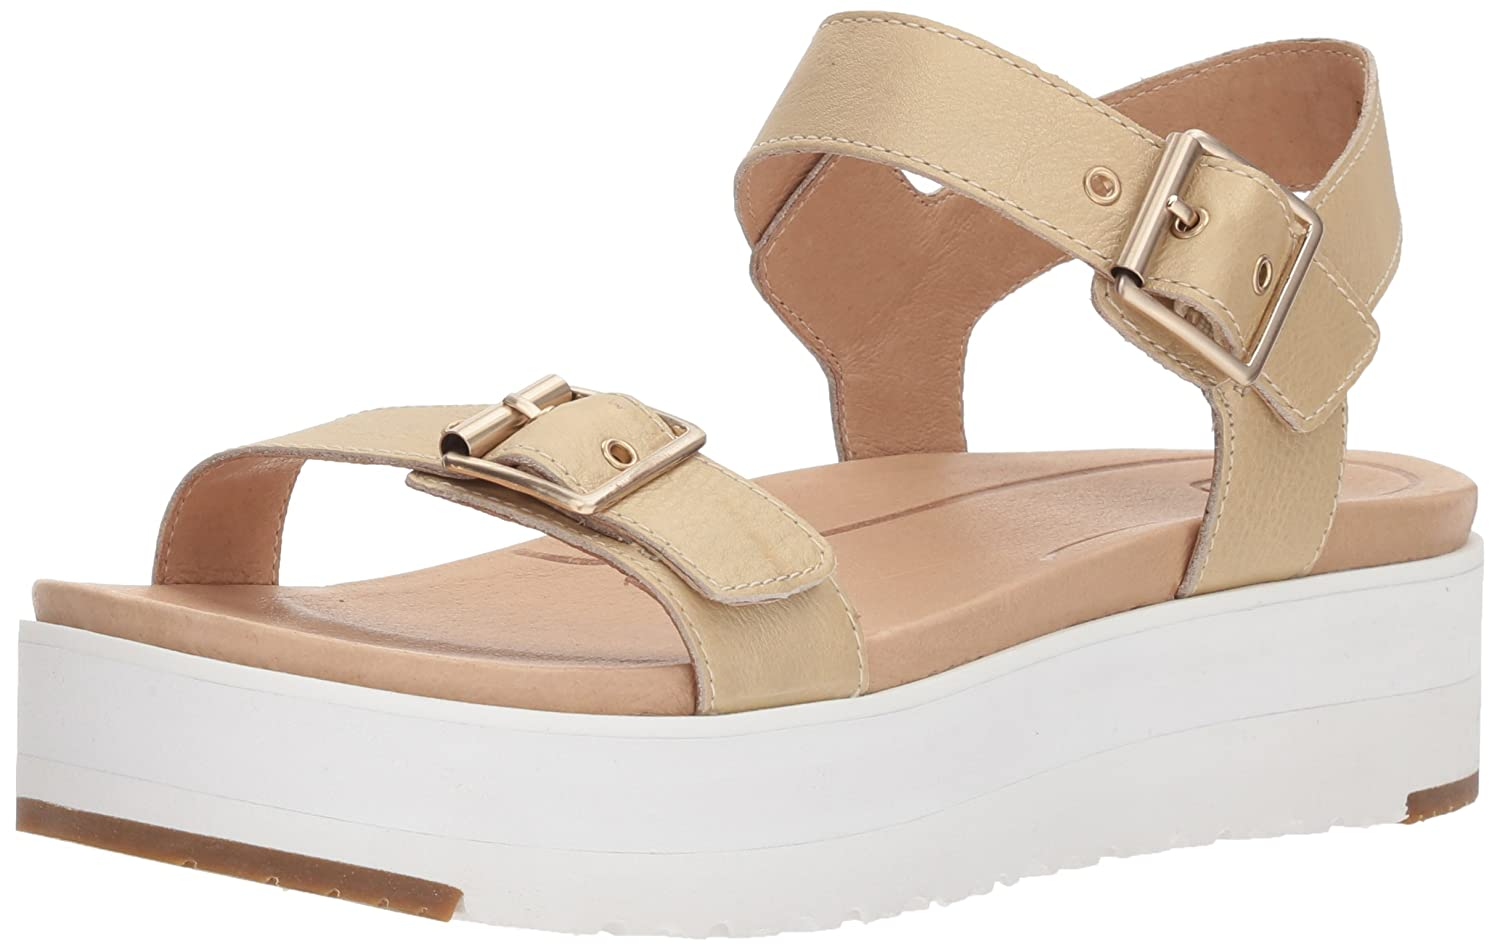 5d6b7e438b3 UGG Women's Angie Metallic Leather Sandal: Amazon.co.uk: Shoes & Bags